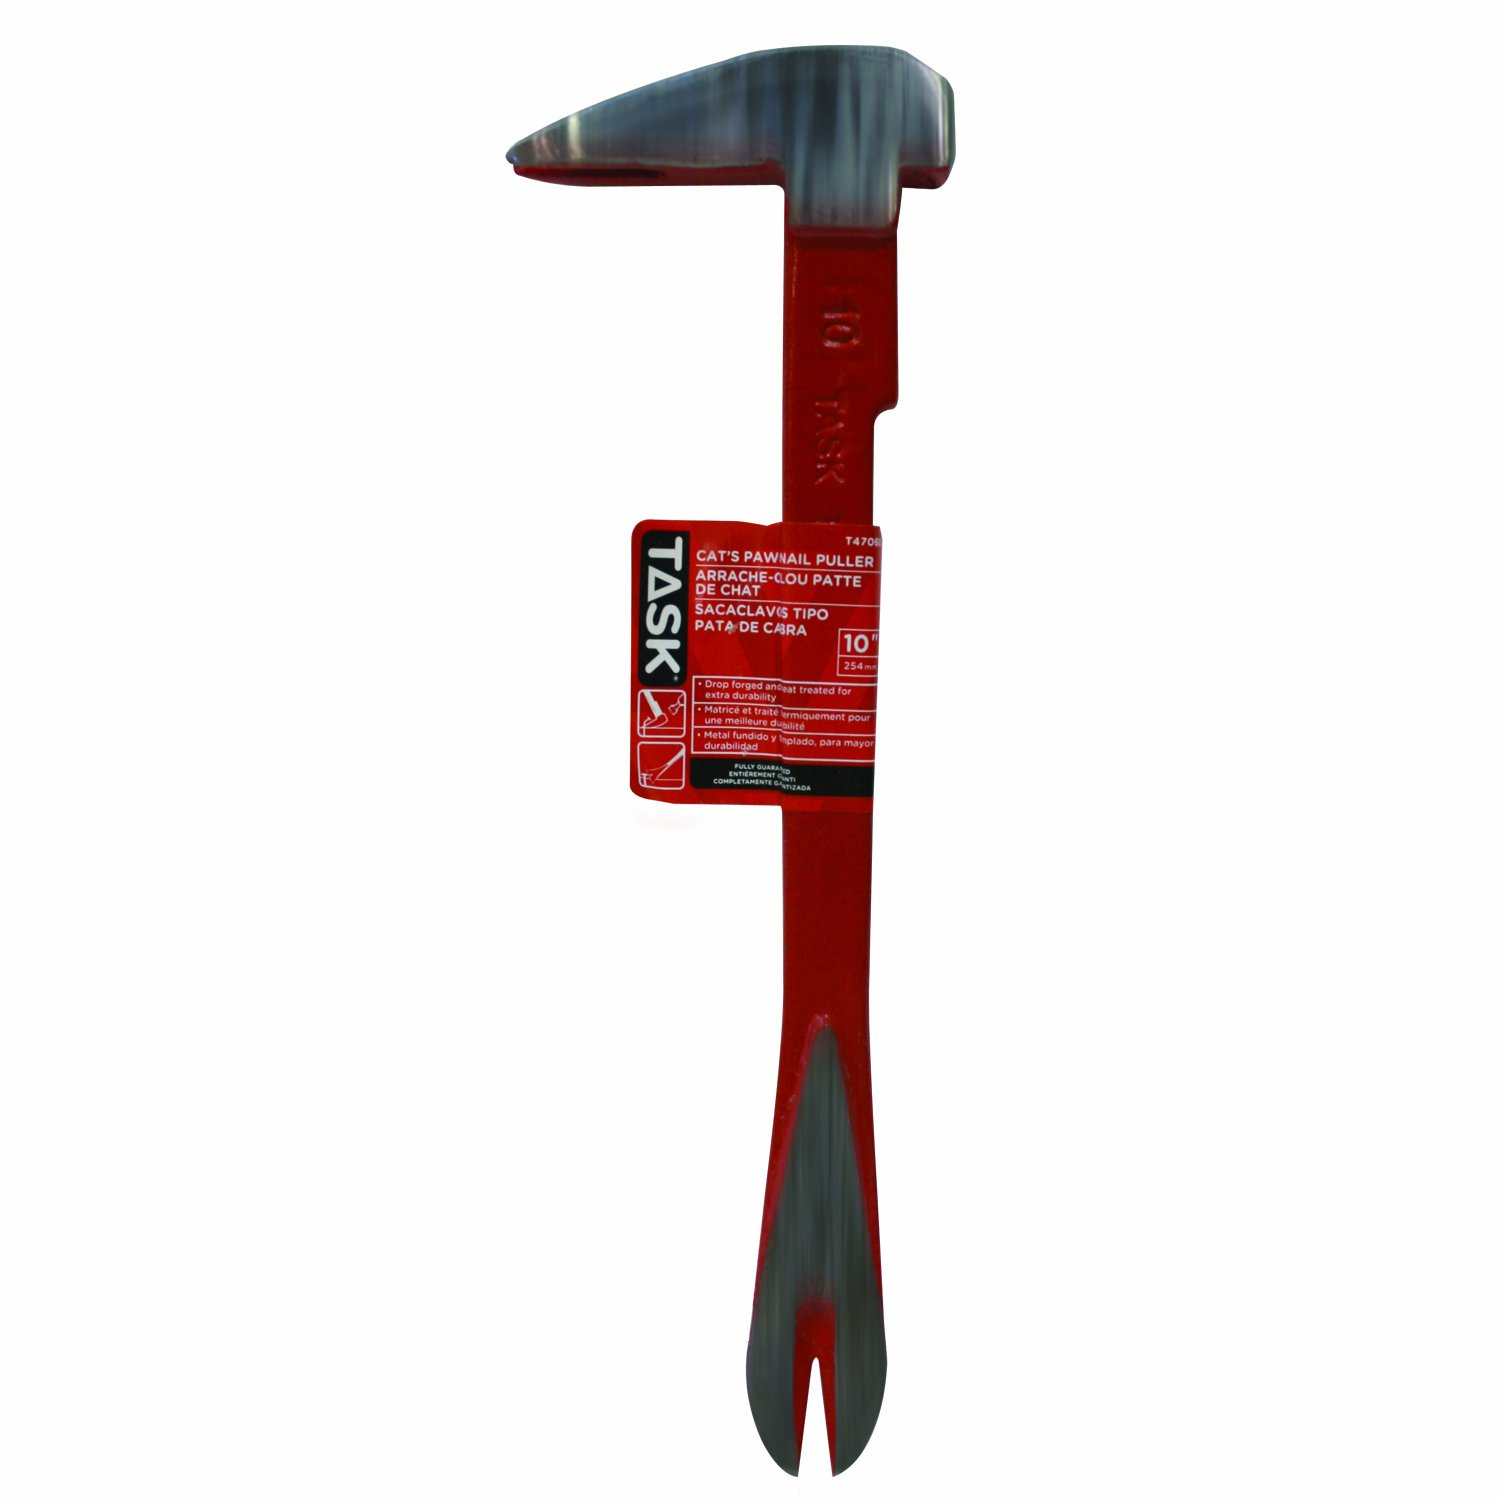 Task Tools T47060 Cat's Paw Nail Puller